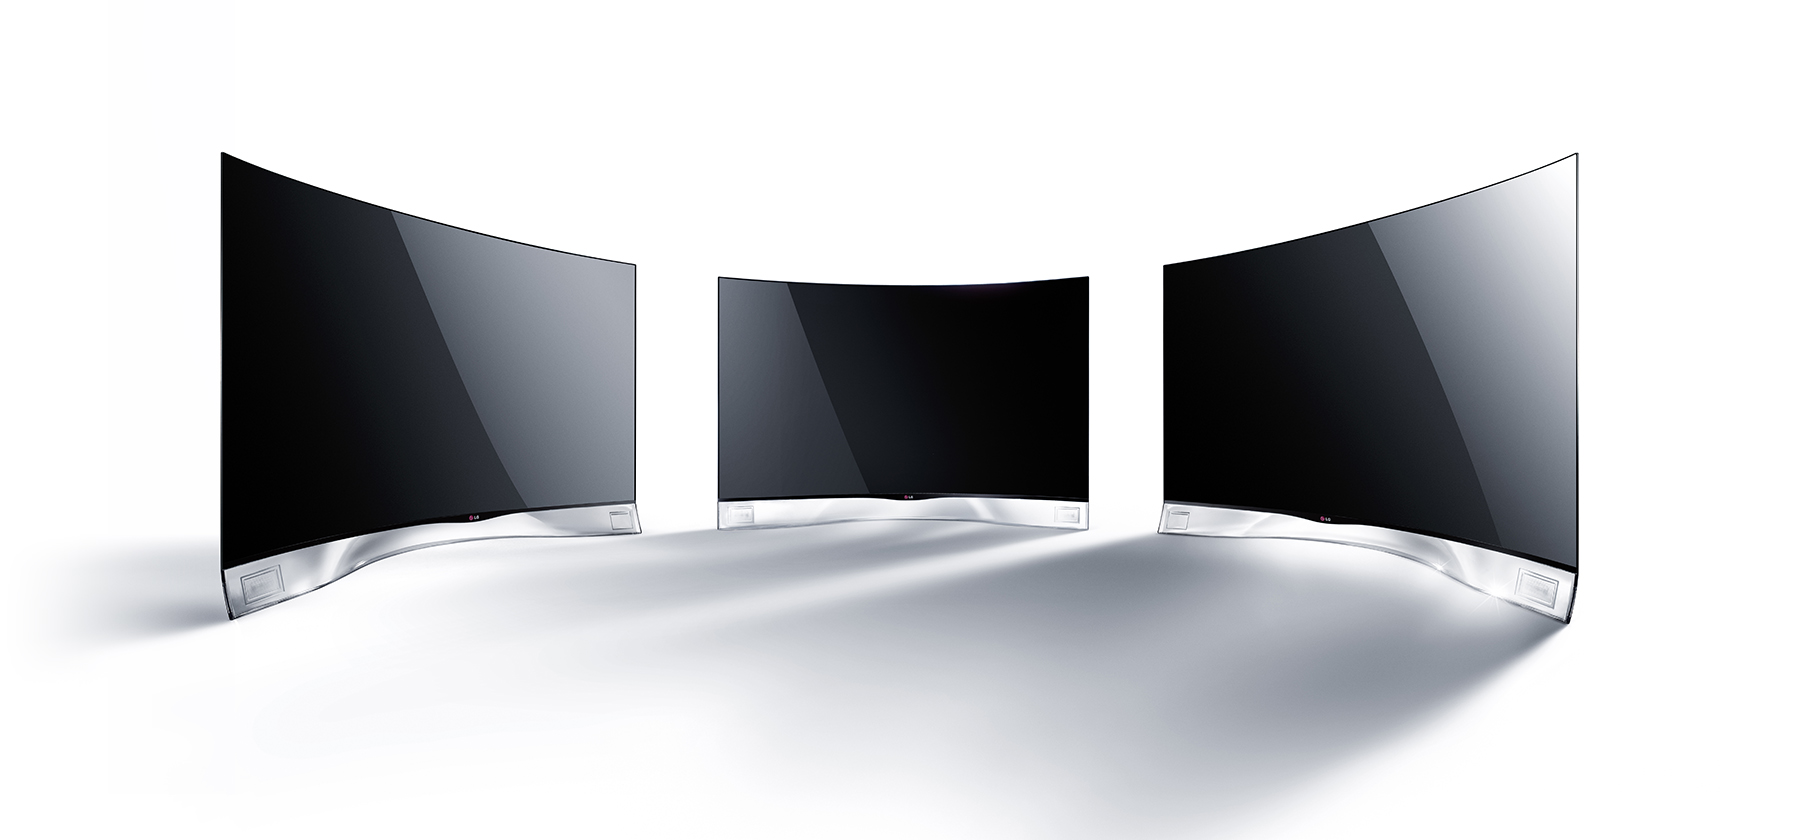 lg to launch oled 4k tv. Black Bedroom Furniture Sets. Home Design Ideas